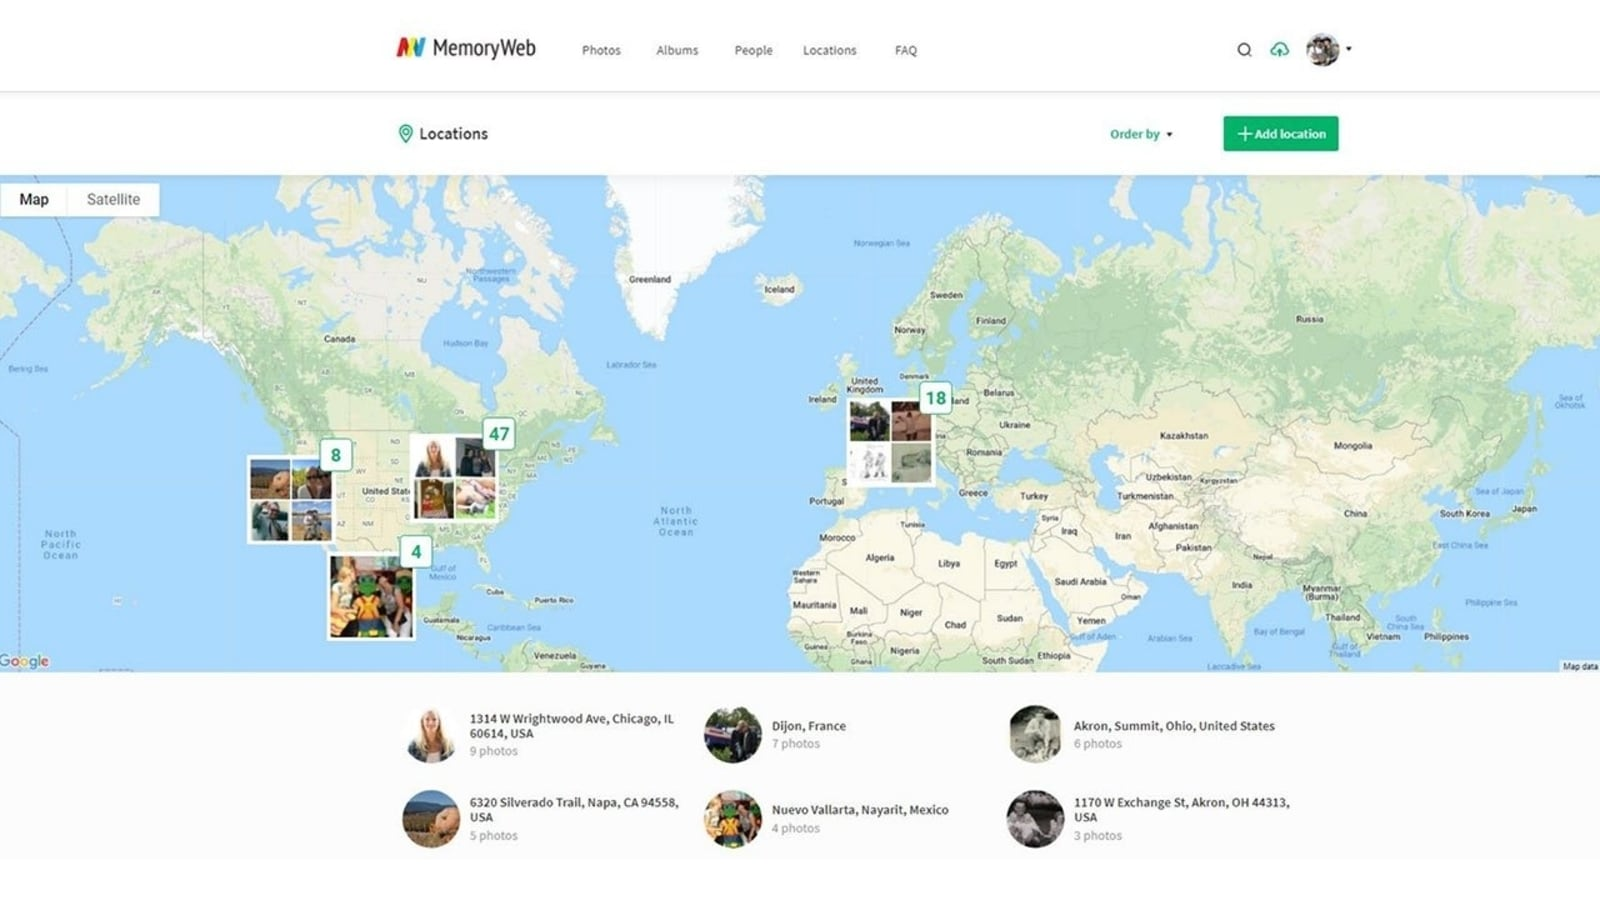 Apple sued by MemoryWeb over places and people tech in Photos app